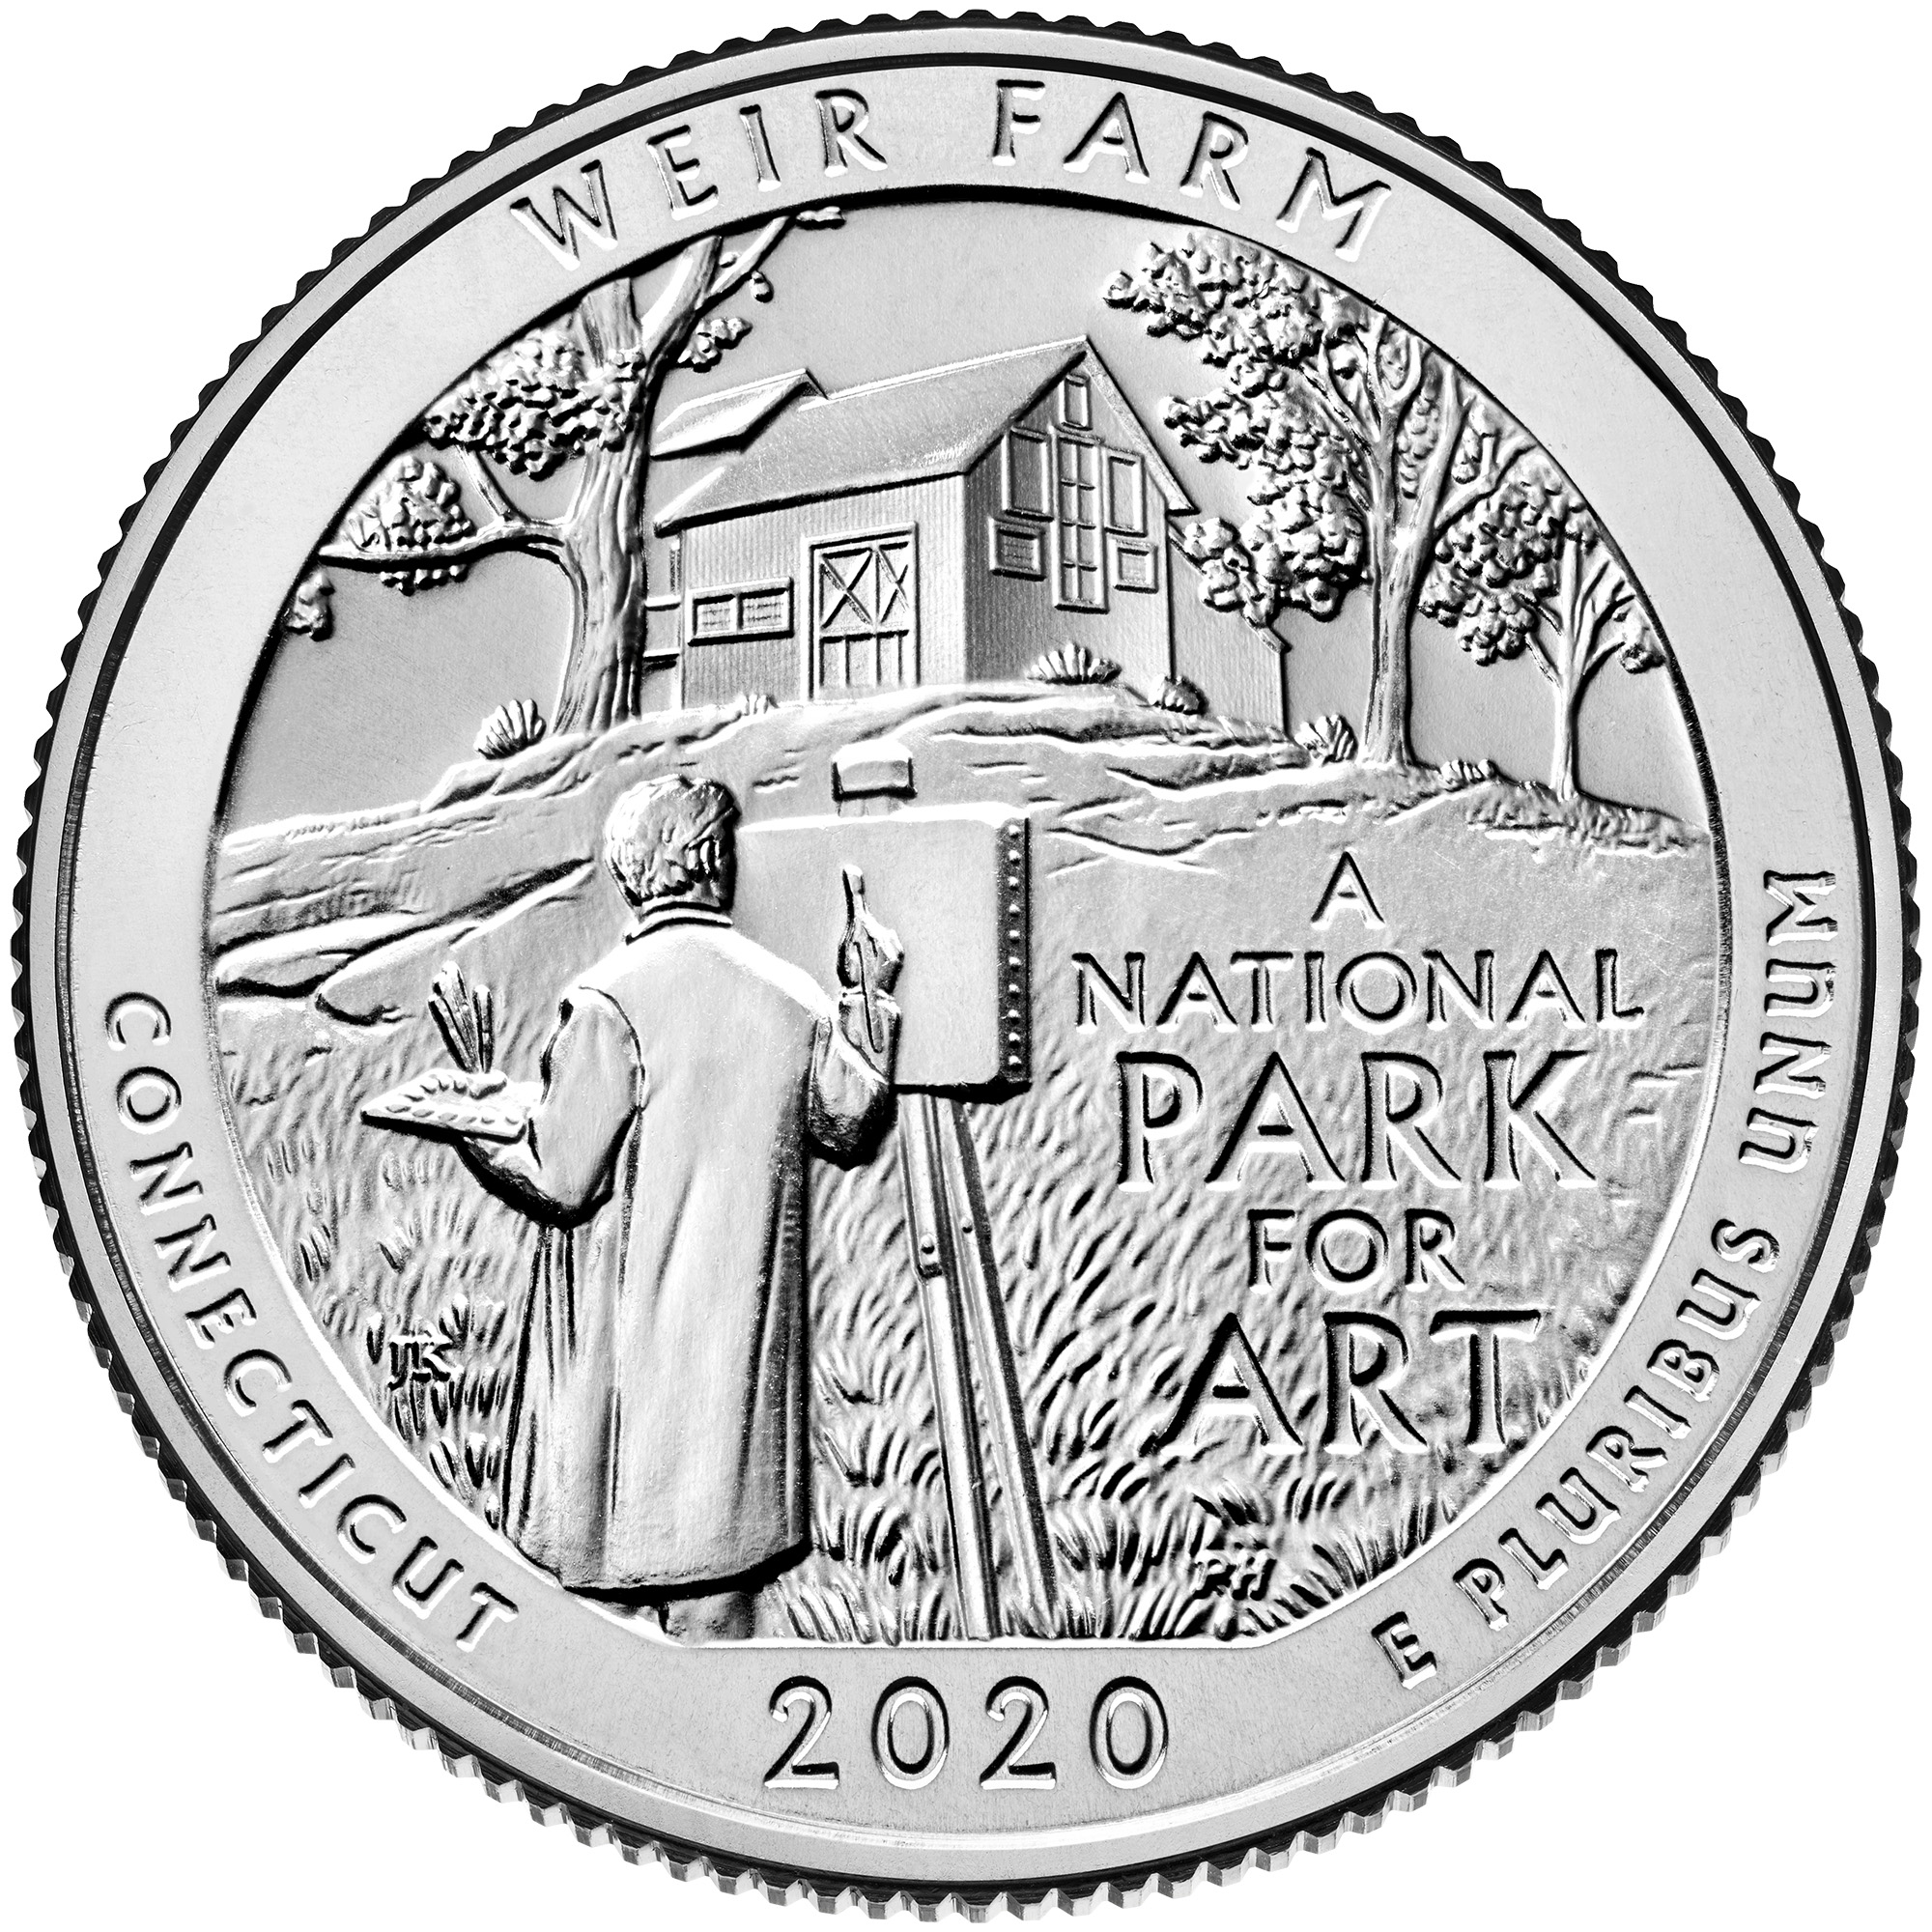 CT 2020 P/&D WEIR FARM NATIONAL HISTORIC TWO UNCIRCULATED QUARTERS SET